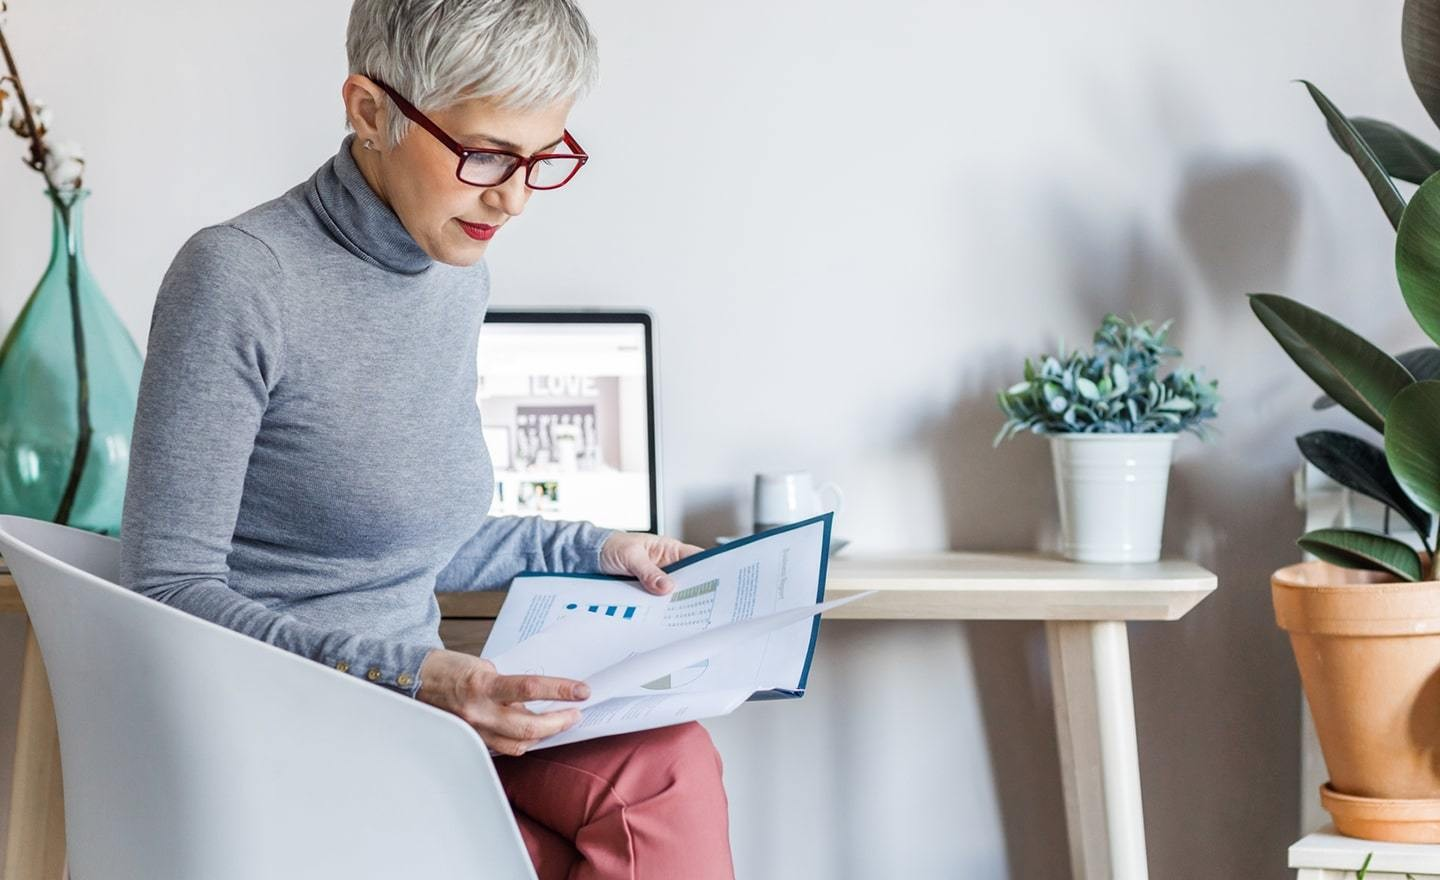 Woman sitting in chair reviewing document